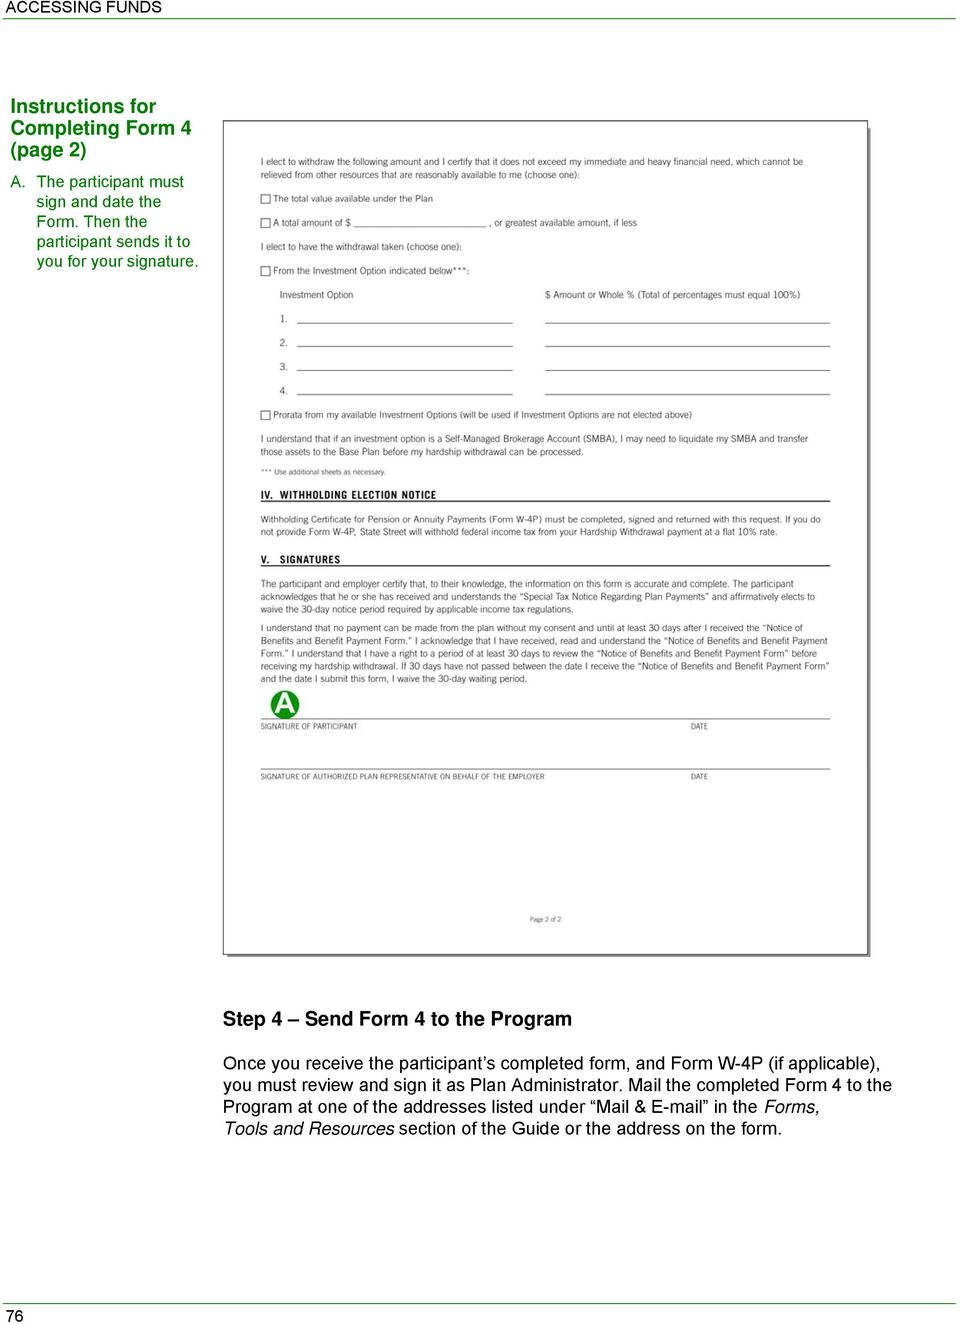 Step 4 Send Form 4 to the Program Once you receive the participant s completed form, and Form W-4P (if applicable), you